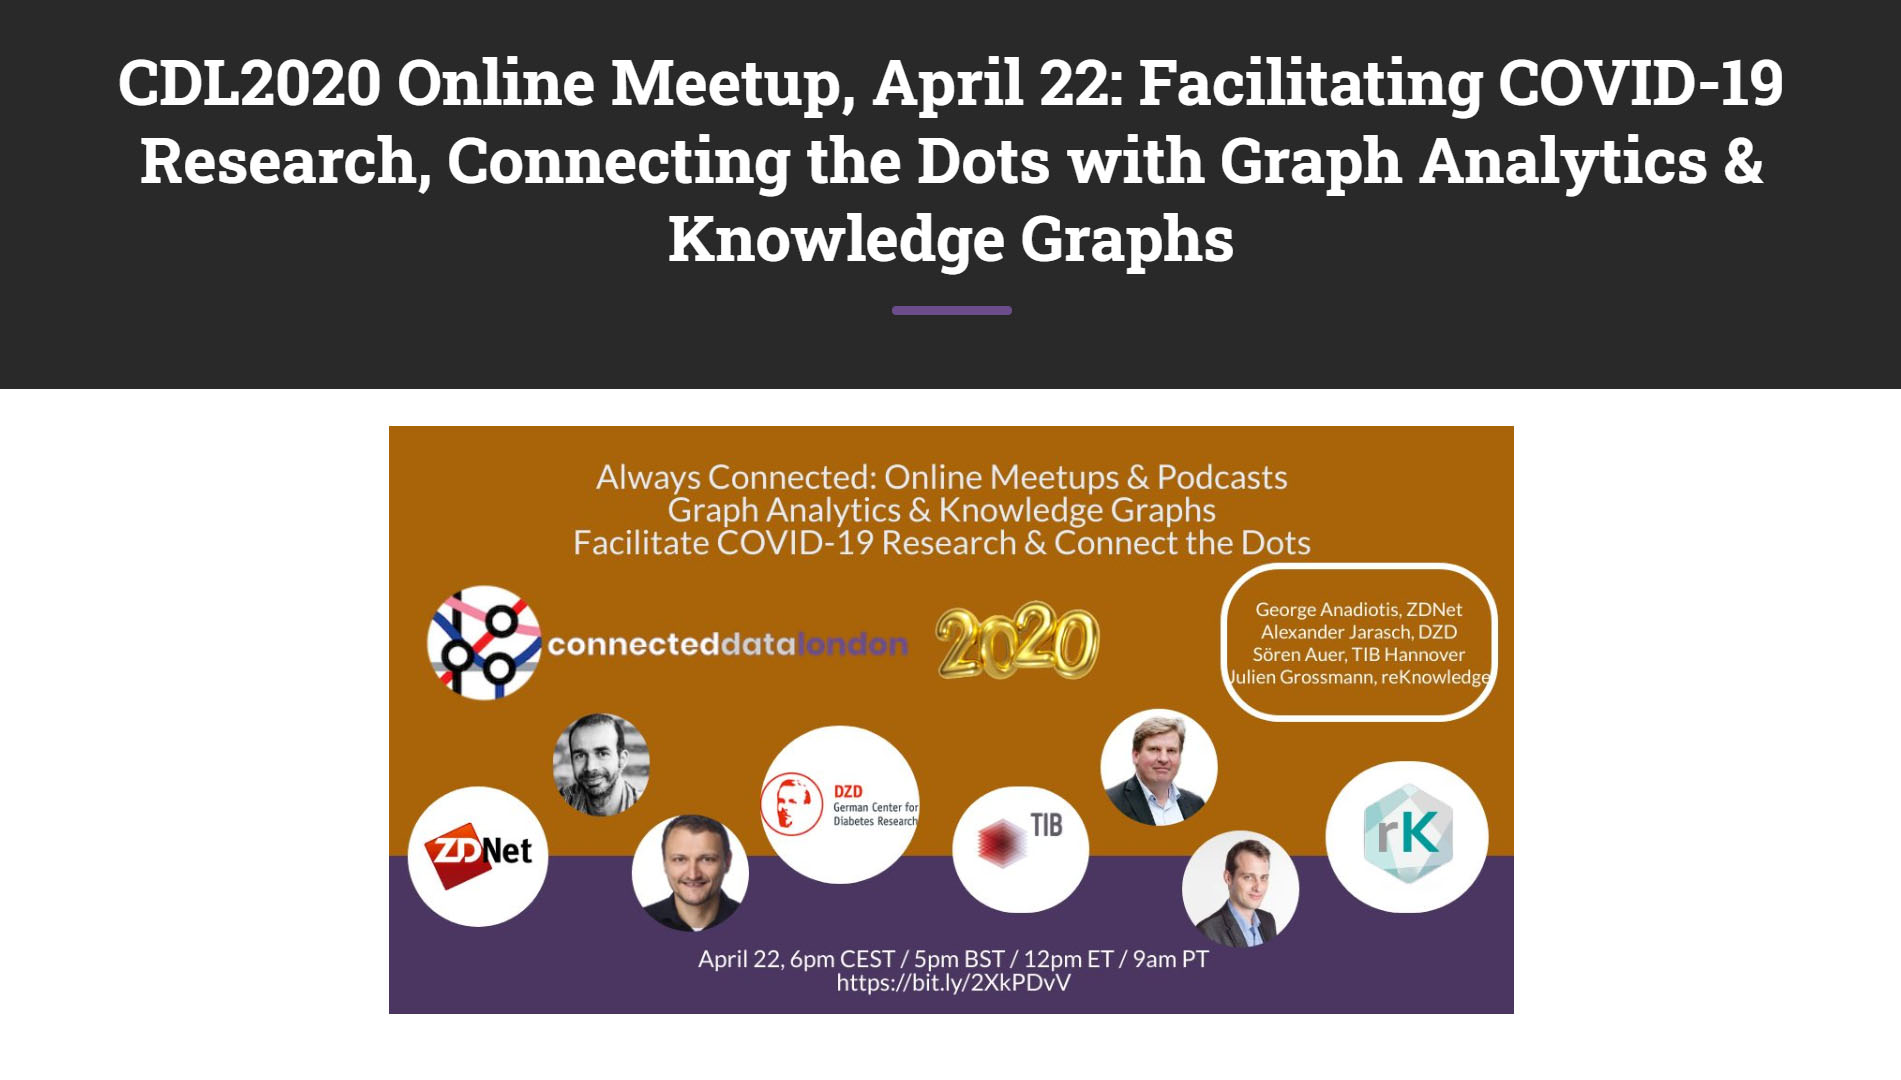 Facilitating COVID-19 Research Using Graph Analytics and Knowledge Graphs and Connecting the Dots with reKnowledge